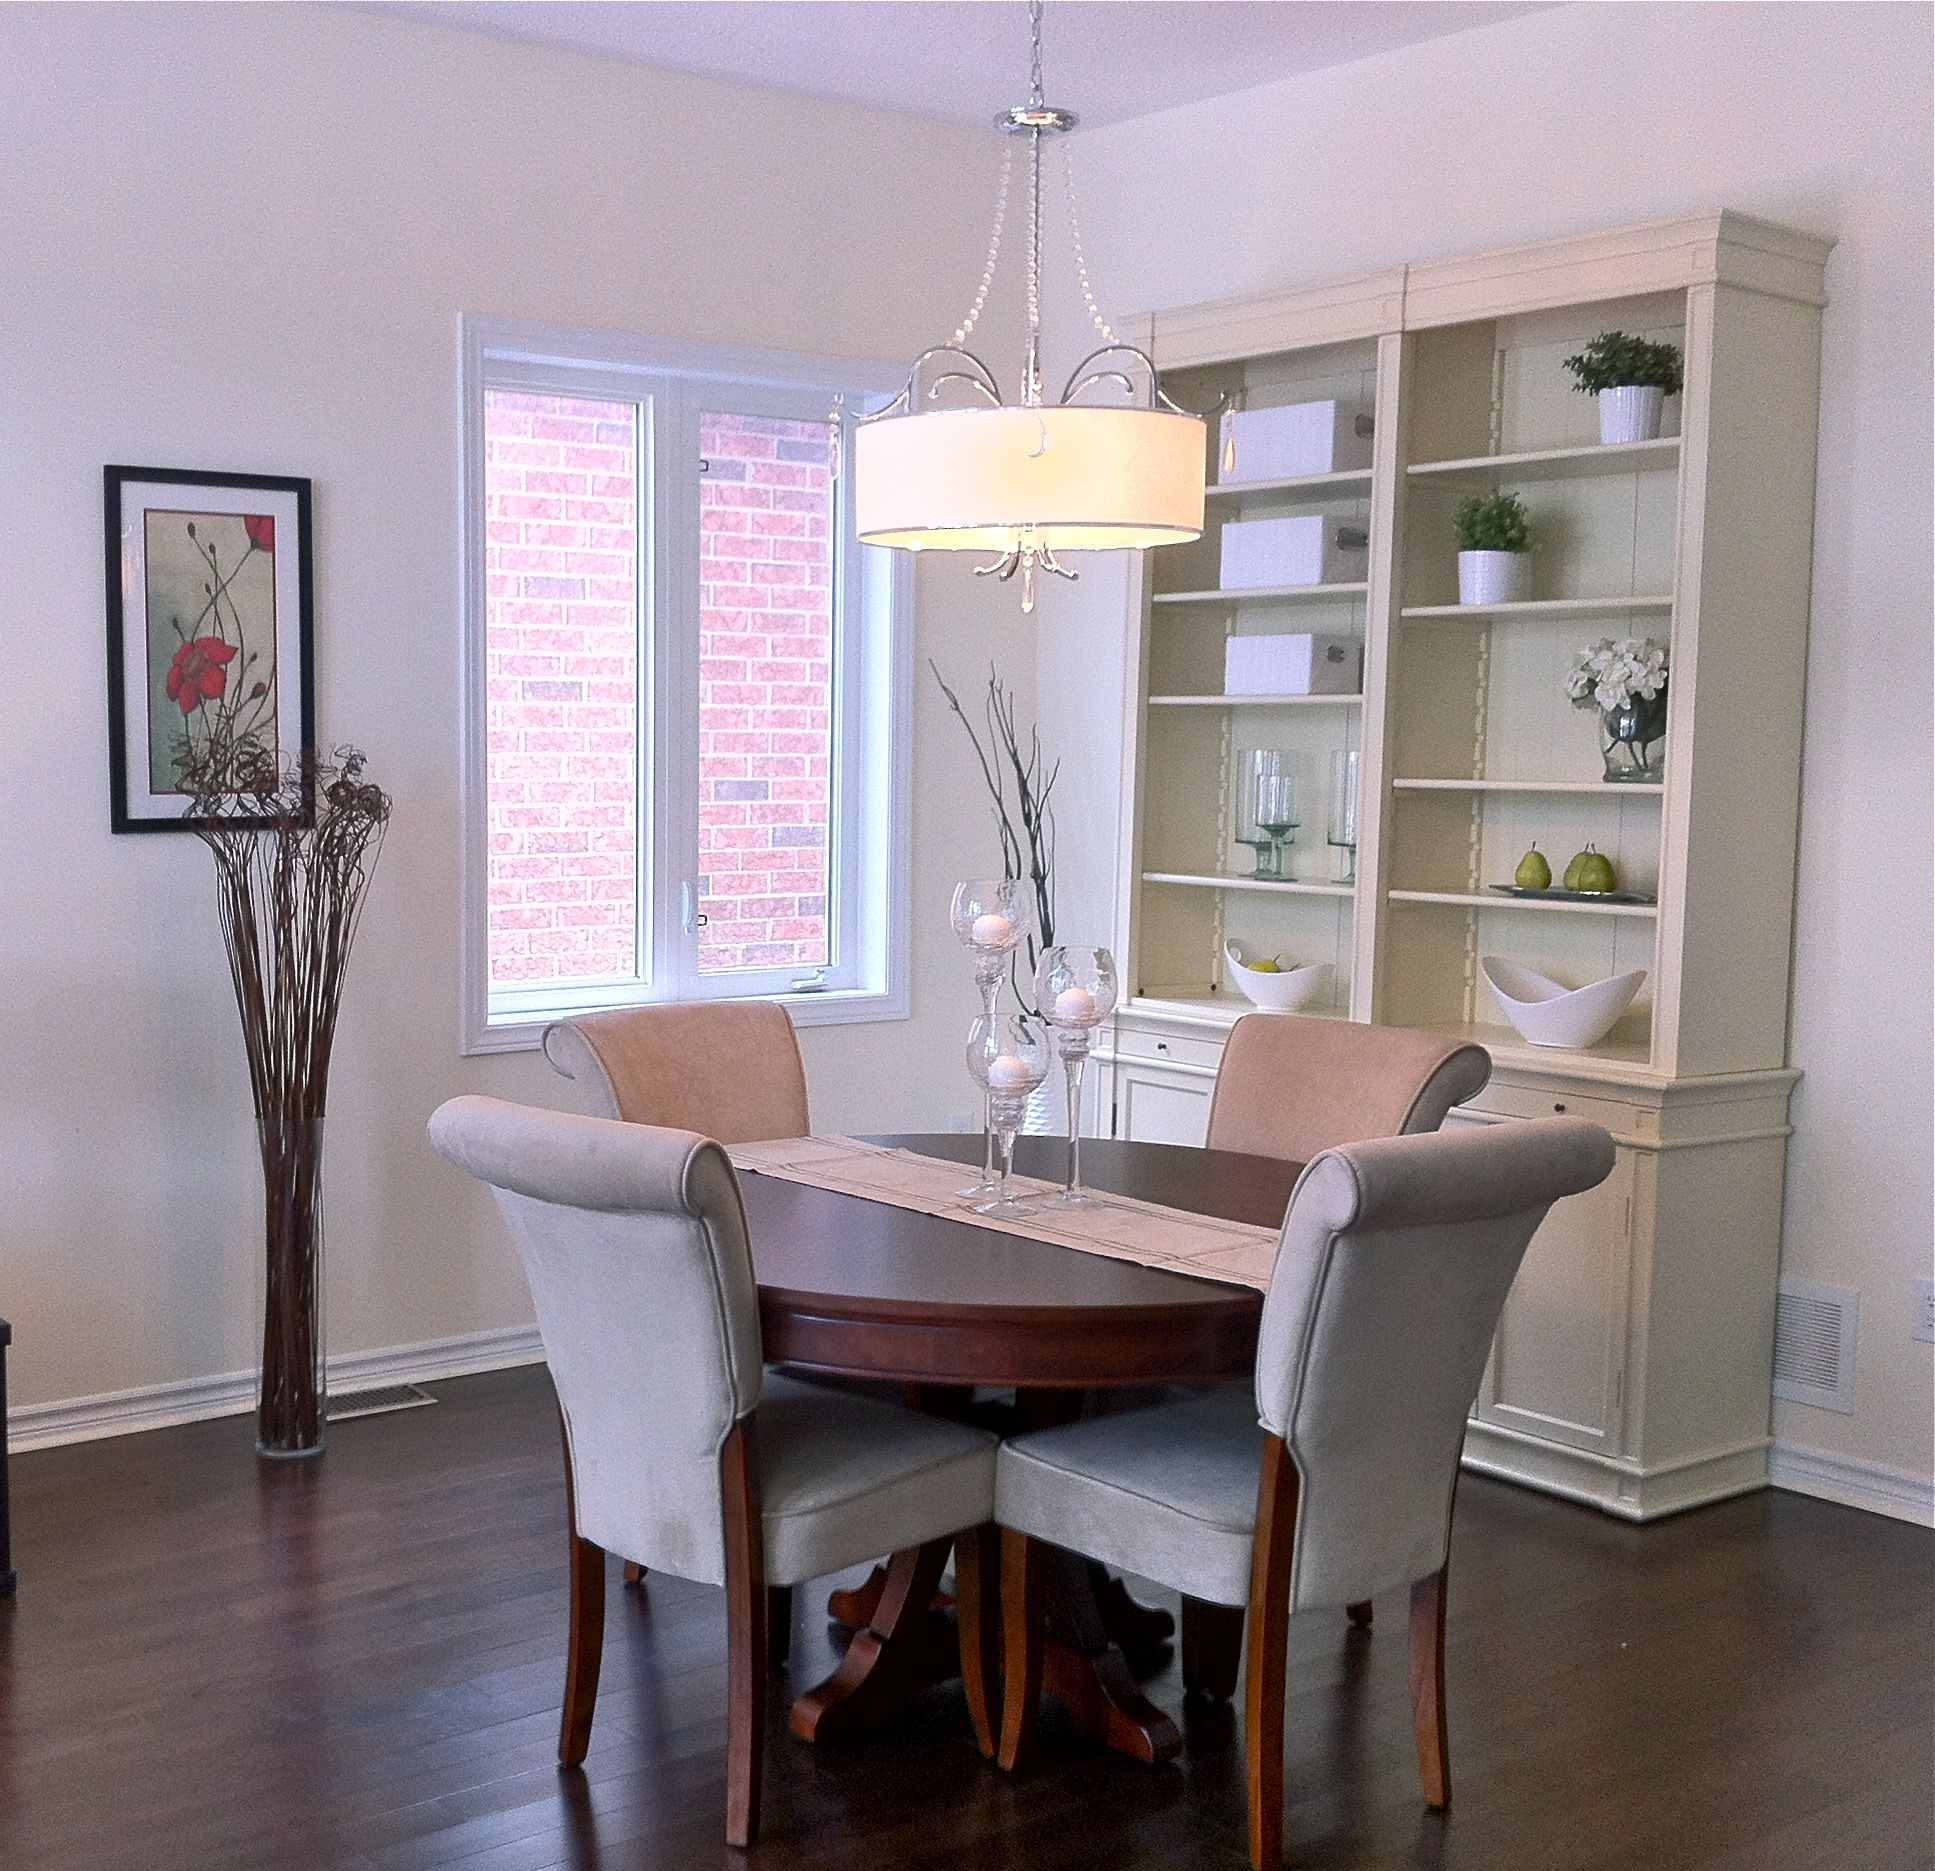 barrie home staging dining room4.jpg